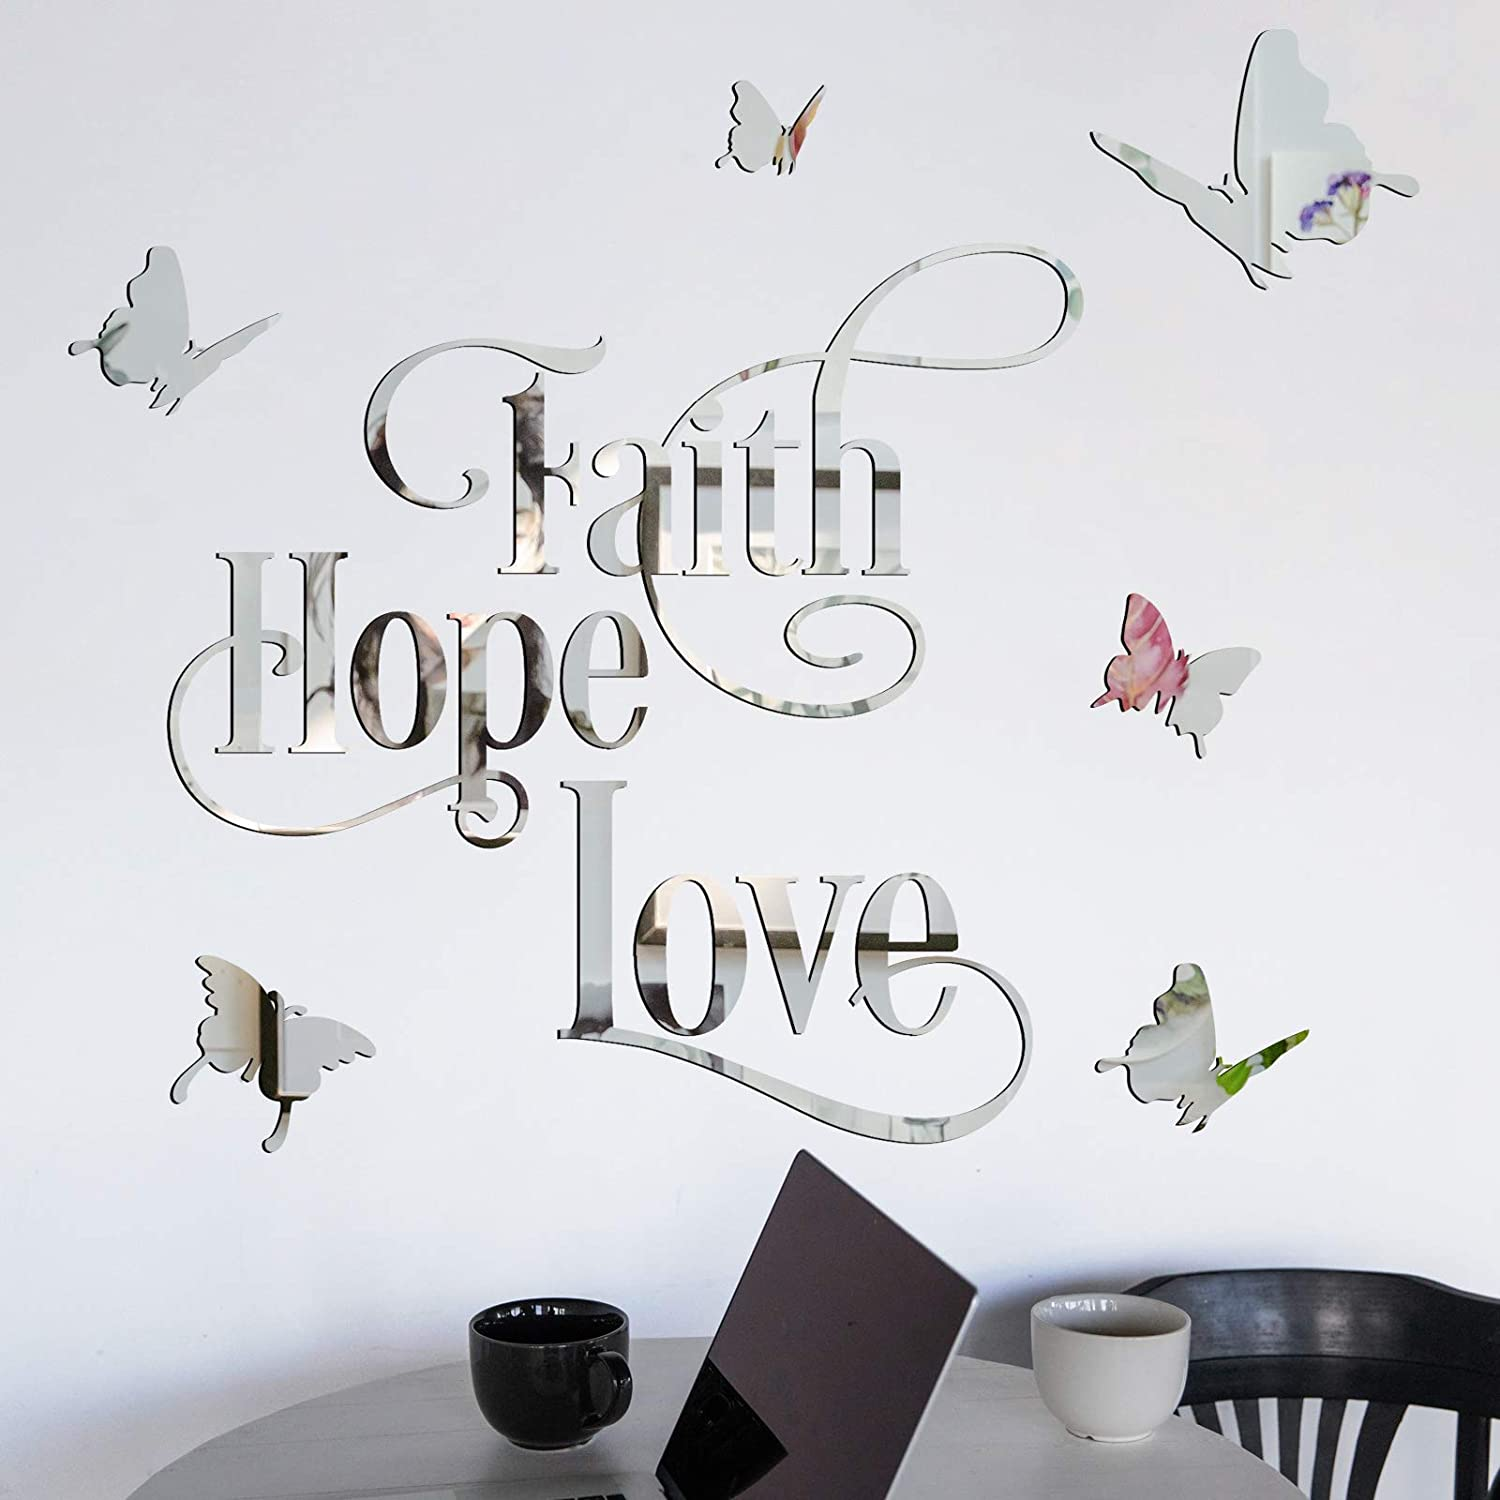 Faith Hope Love 3D Silver Acrylic Mirror Wall Decor Stickers, HOLENGS 3D Butterfly Mirror Surface Removable Motivational Letter Wall Decals, Crystal DIY Wall Decoration for Home Living Room Bedroom